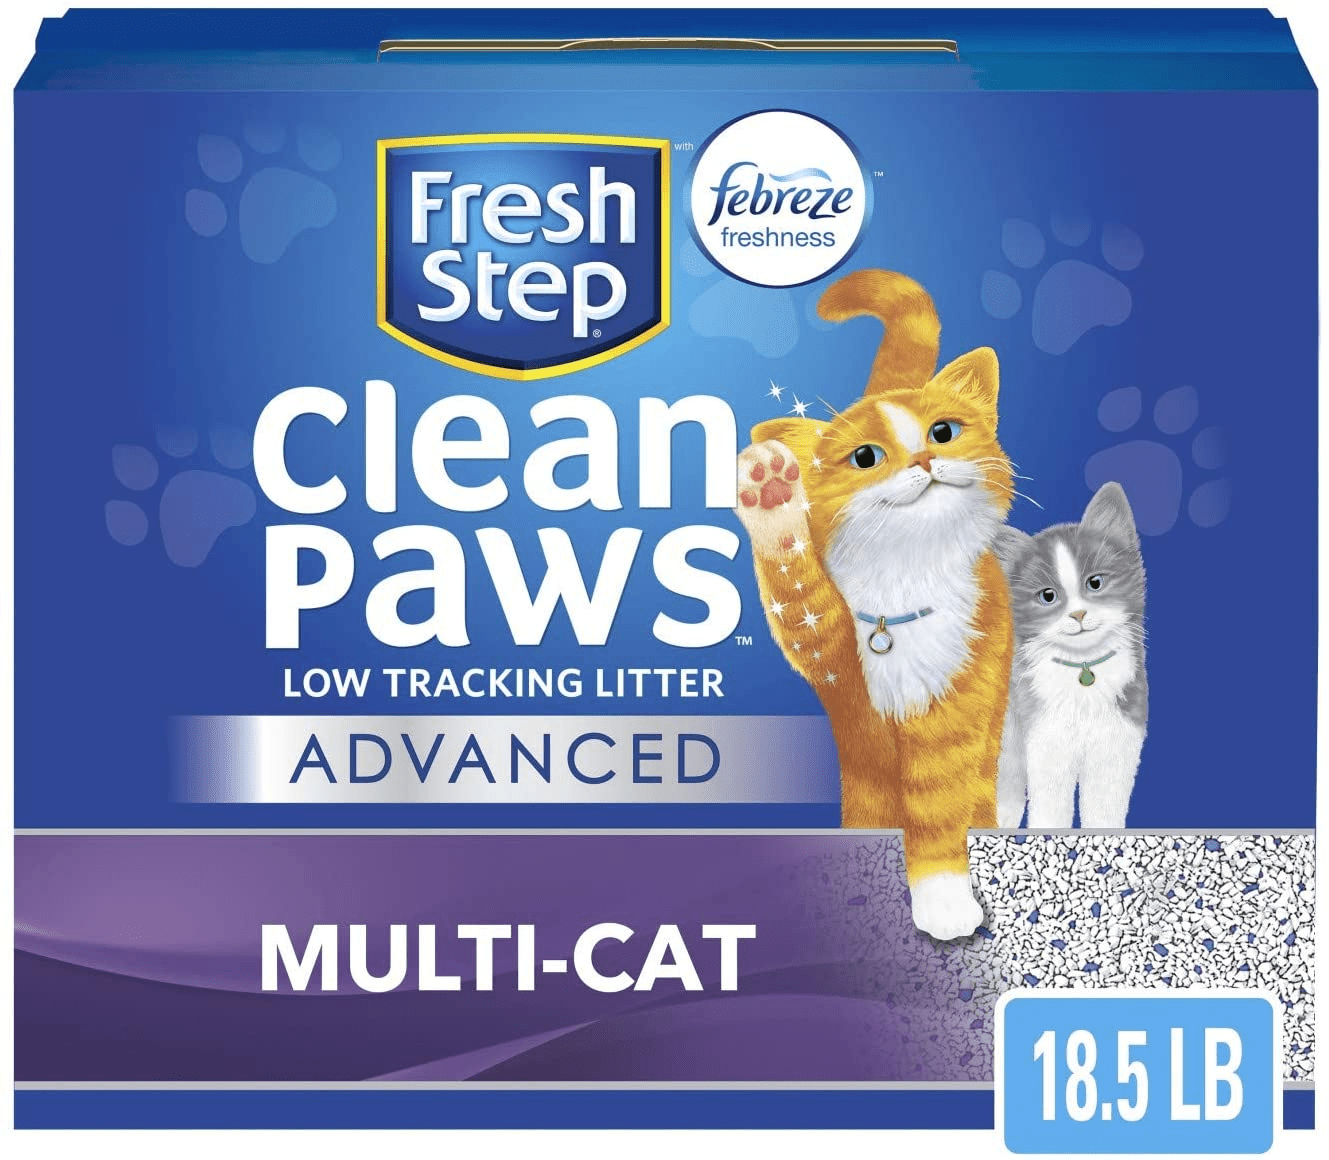 Best Pet Products From Amazon Best Sellers 2021